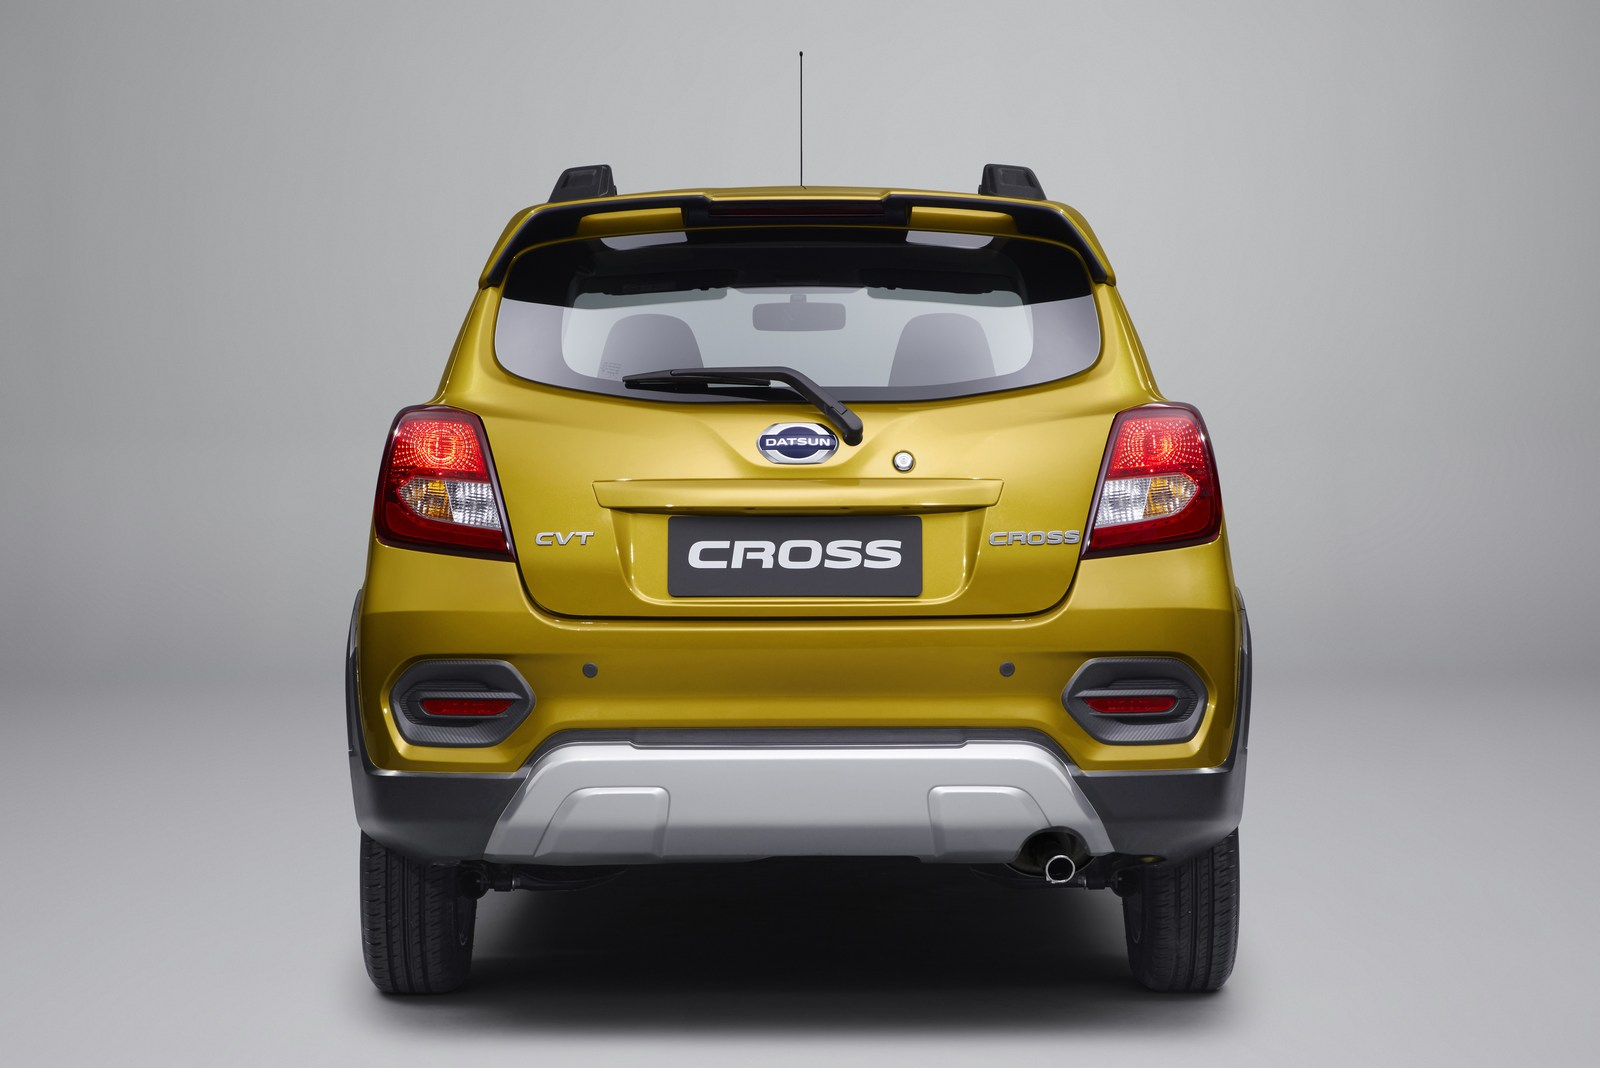 Datsun Cross Unveiled As The Brand's First Crossover